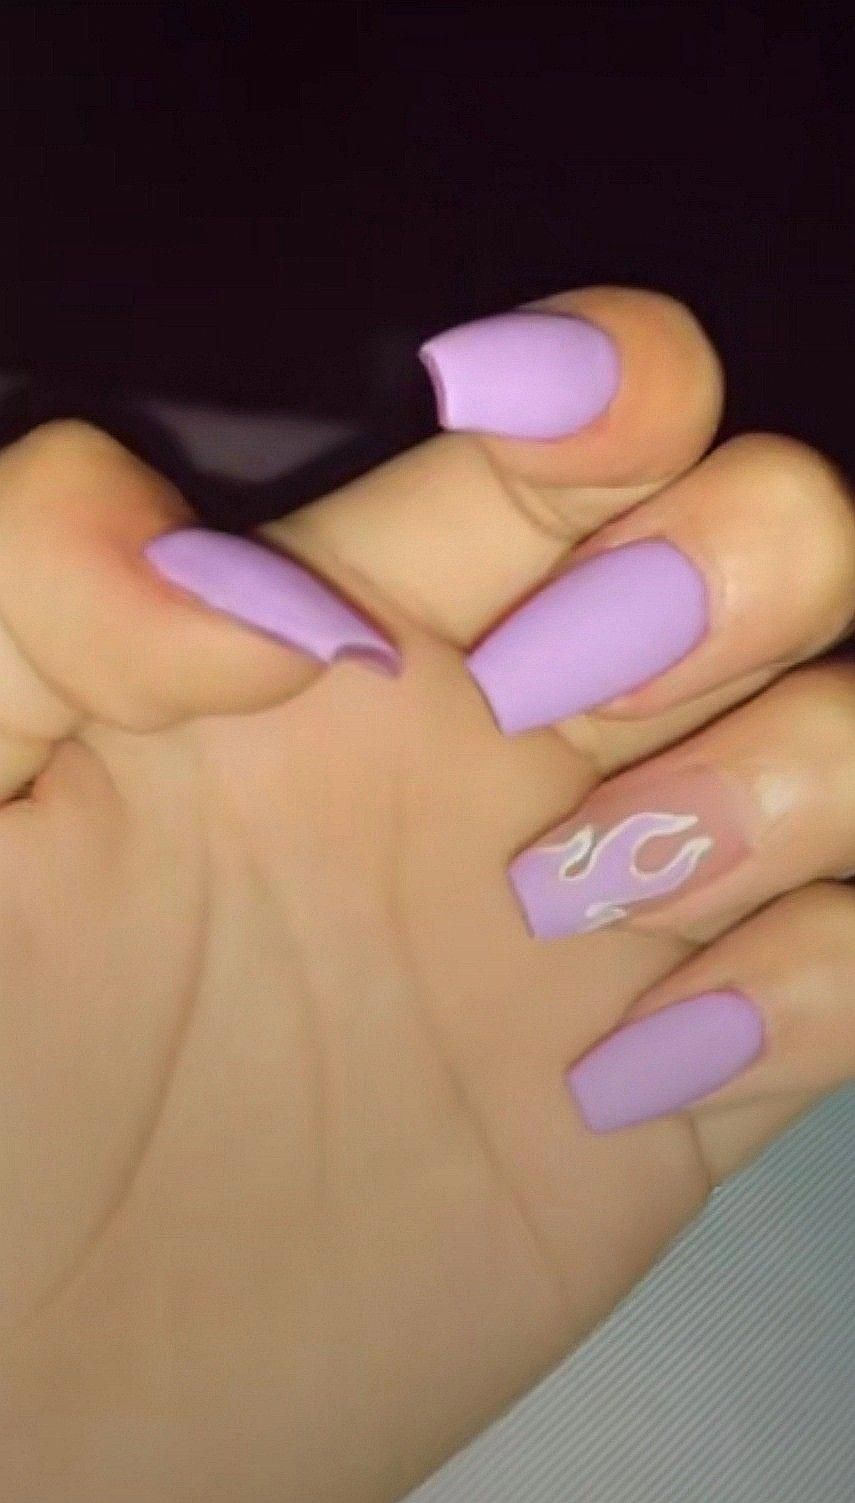 Pin By Ashley On Formal Nails In 2020 Purple Acrylic Nails Best Acrylic Nails Acrylic Nails Coffin Short